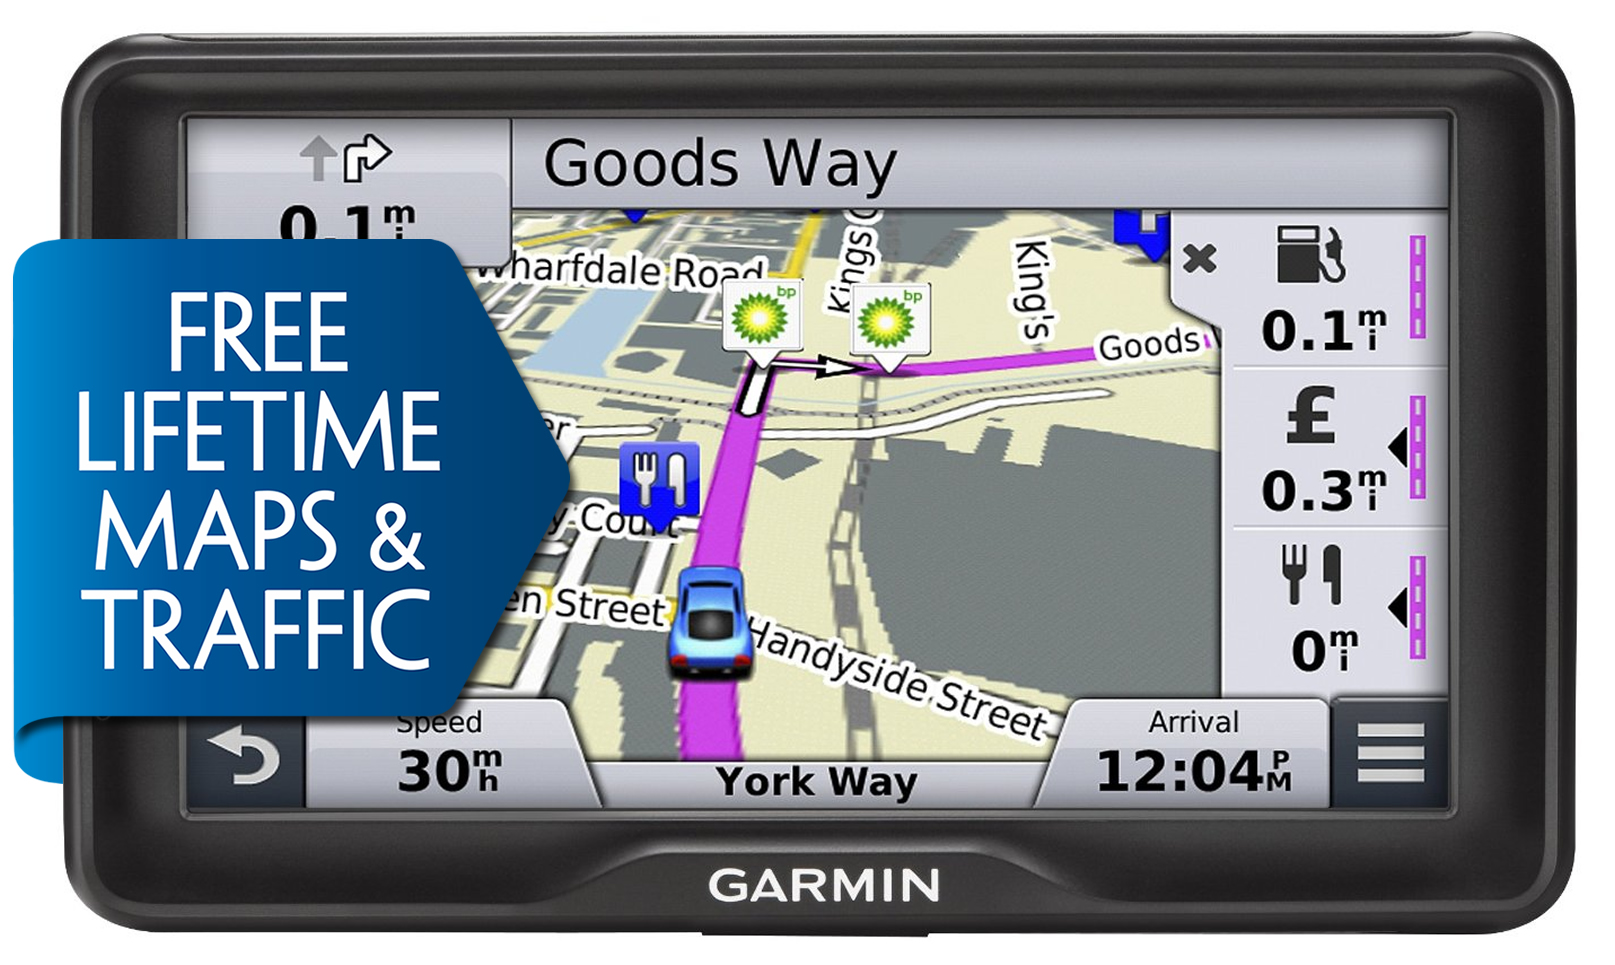 NUVI_2797LMT_Icon Garmin Gps Lifetime Maps And Traffic on igo gps maps, hunting gps maps, offline gps maps, gas well location gps maps, gps satellite maps, humminbird gps maps, gps topo maps, gps montana ownership maps, curacao gps maps, disney gps maps, nokia gps maps, dominican republic gps maps, best gps maps, delorme gps maps, gps lake maps, gps trail maps, sygic gps maps, war game maps, national geographic gps maps, snowmobile gps maps,